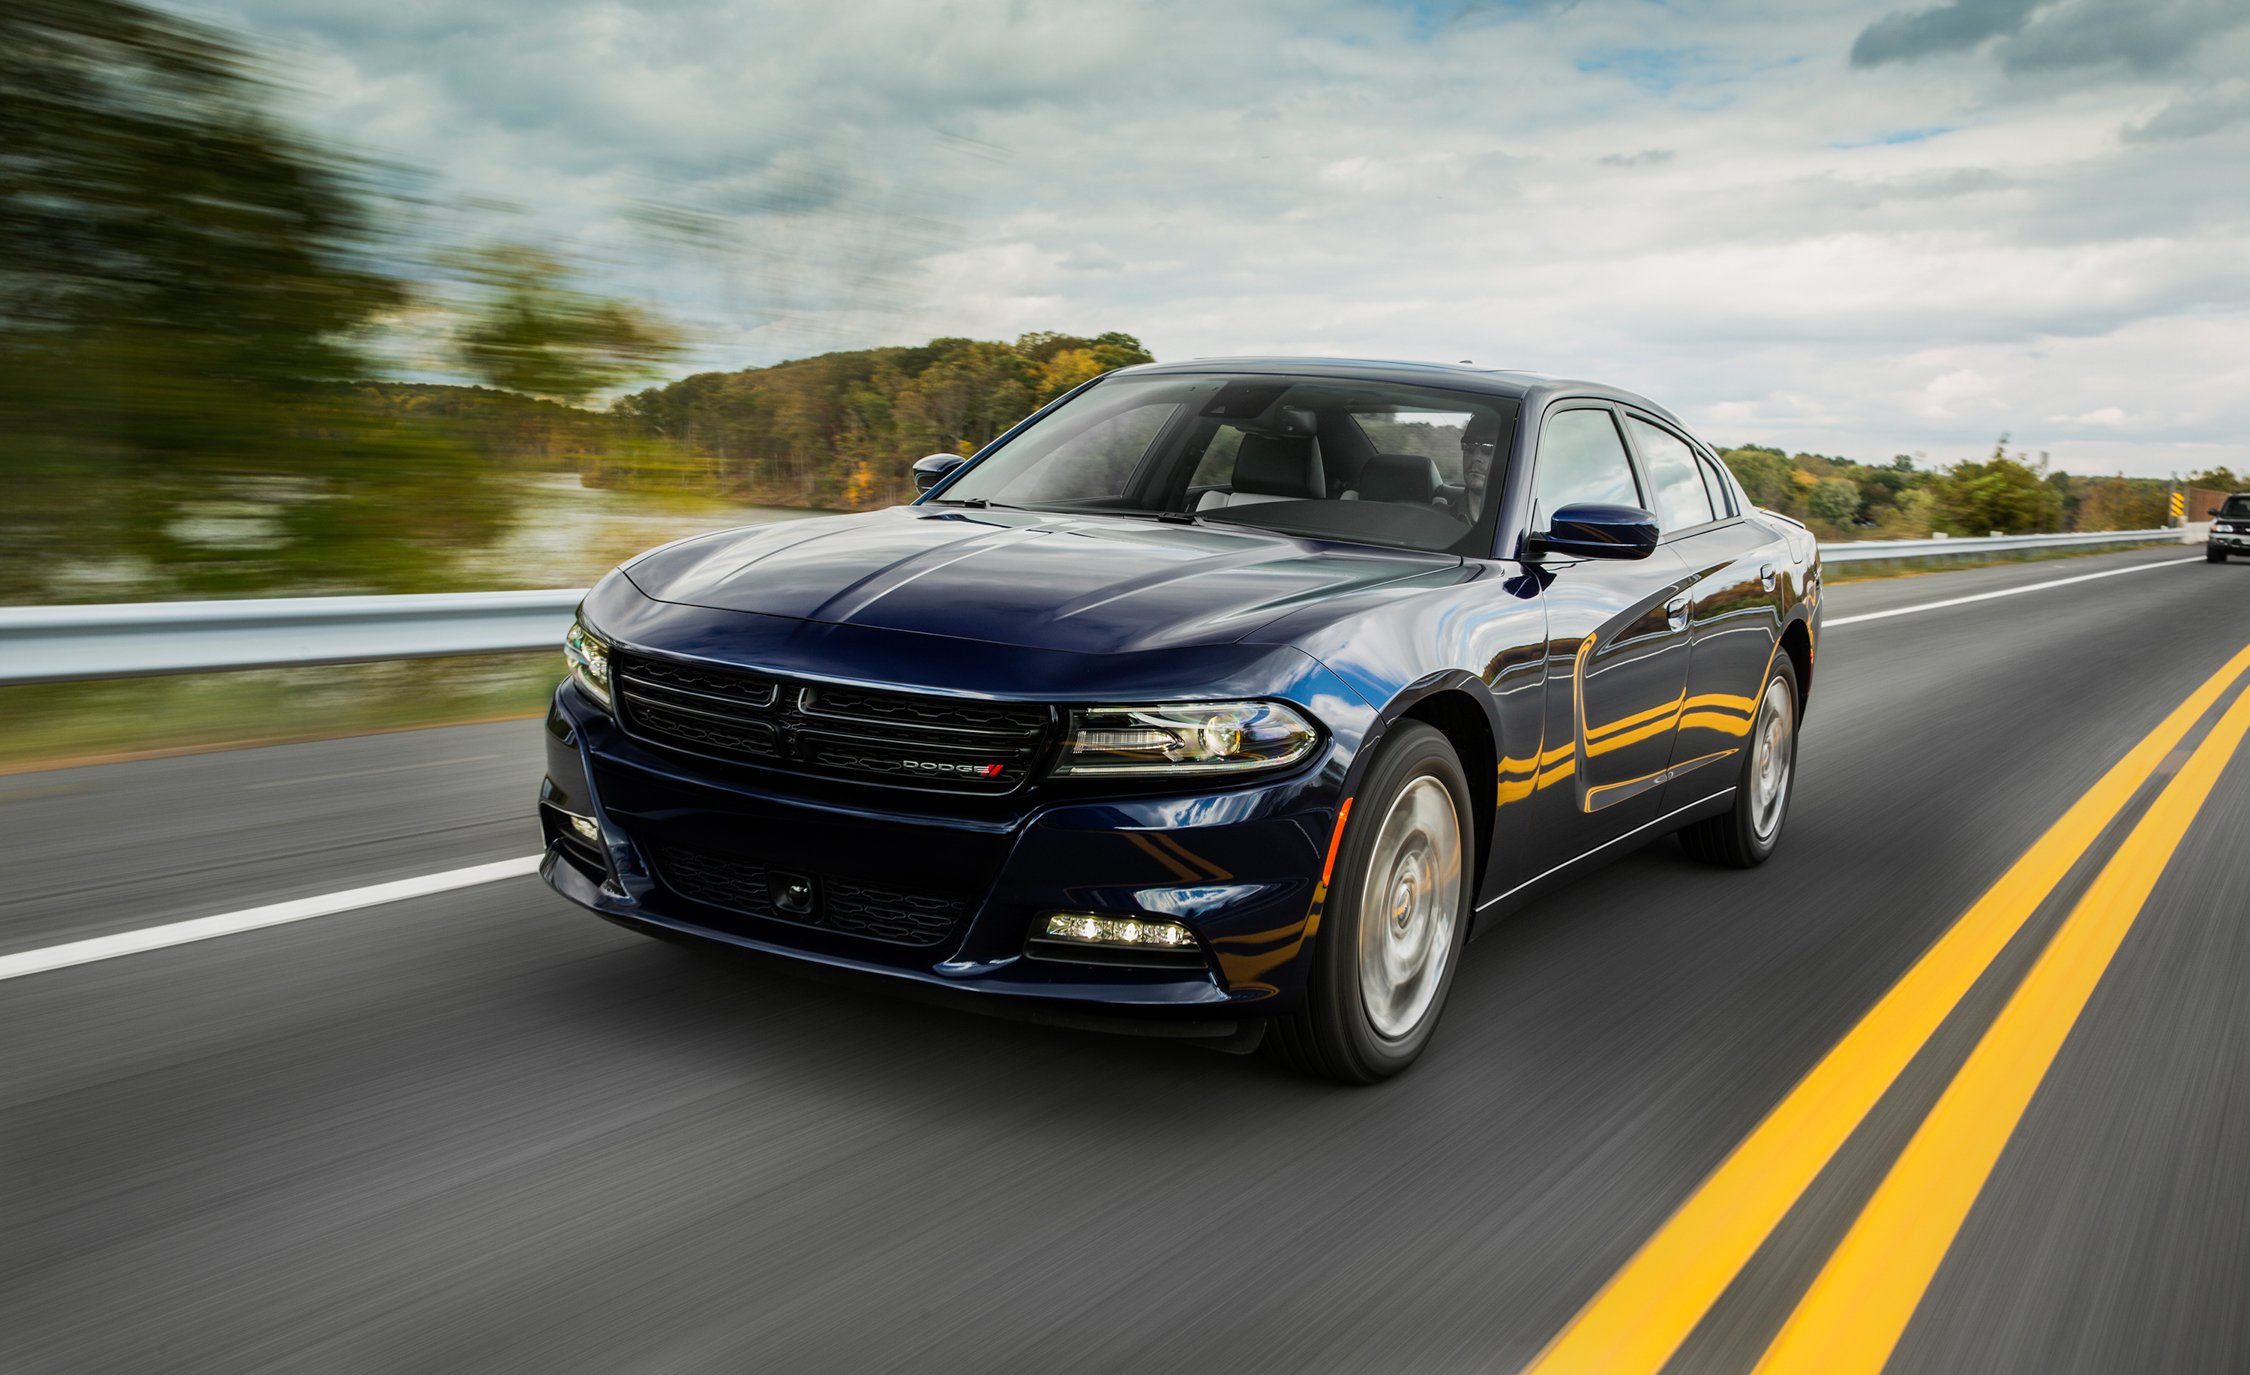 2015 Dodge Charger SXT AWD (Photo 26 of 39)